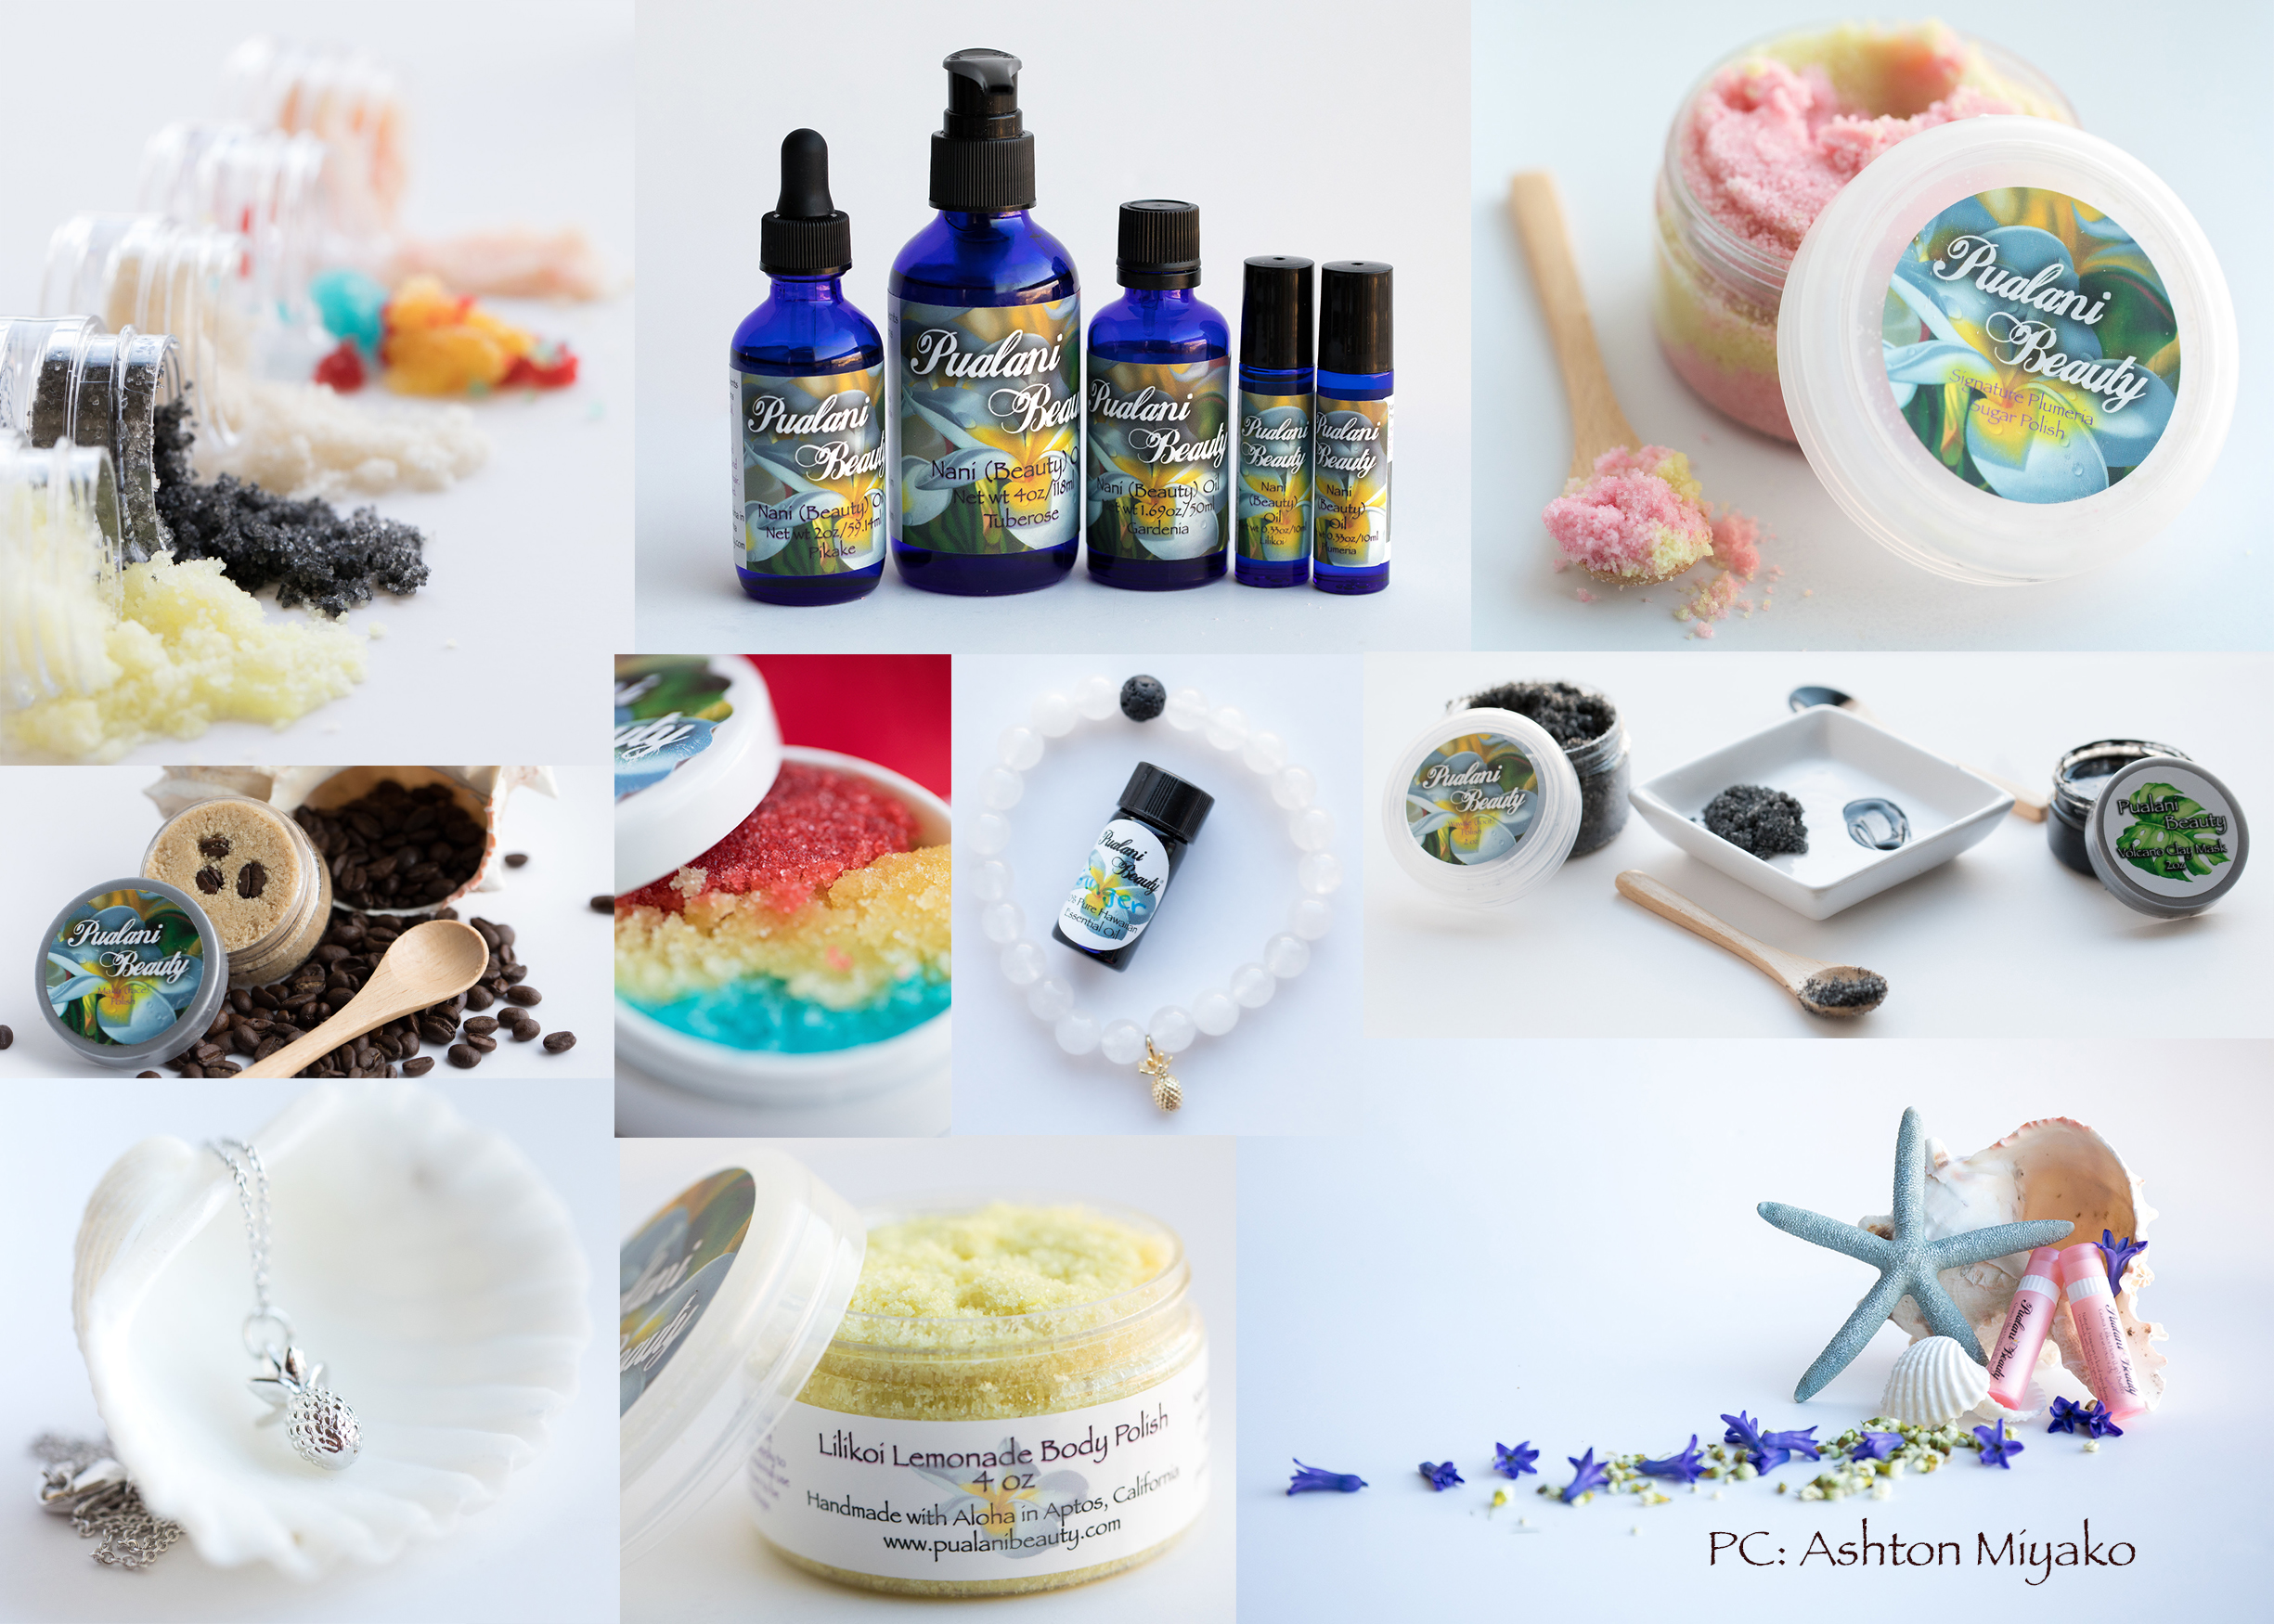 Take Hawaii home today - Check out our selection of natural, organic Hawaiian skincare products, which include perfumes, lotions, moisturizing beauty oils, scrubs, face care line, mommy&me line, men's line, essential oils, and jewelry.